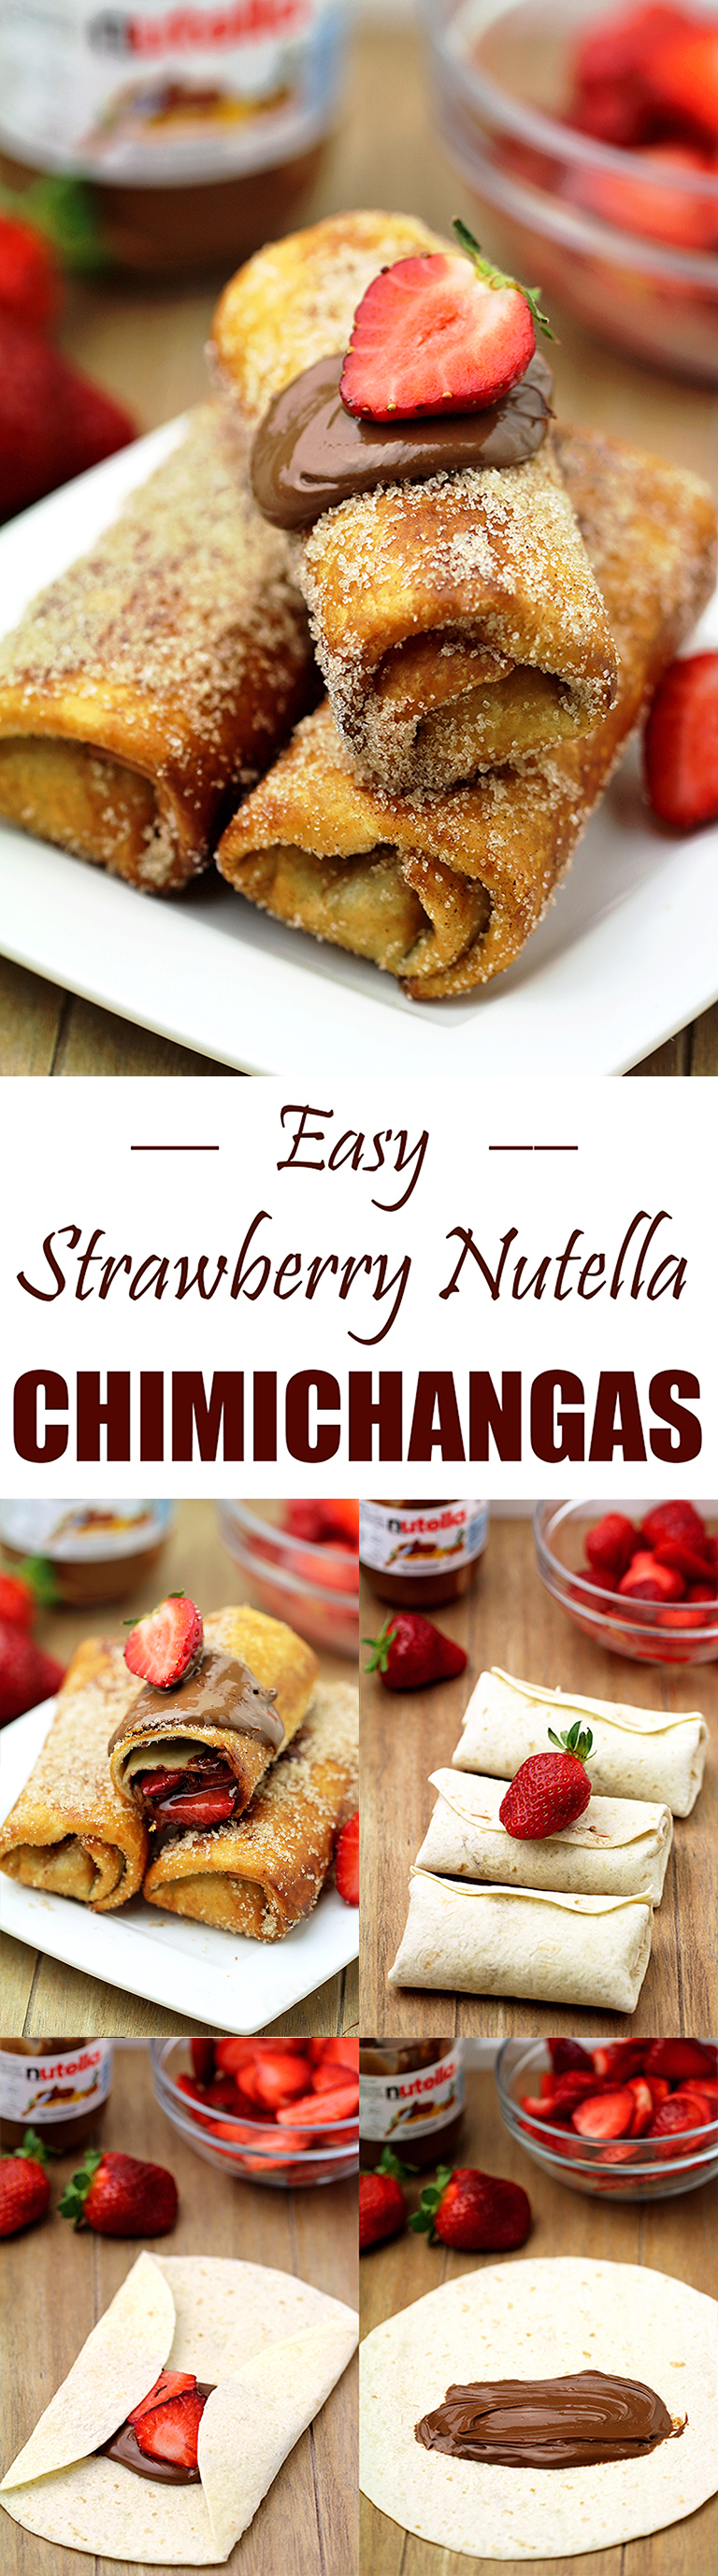 Easy Strawberry Nutella Chimichangas is an easy recipe for perfectly tasty homemade Chimichangas ♥